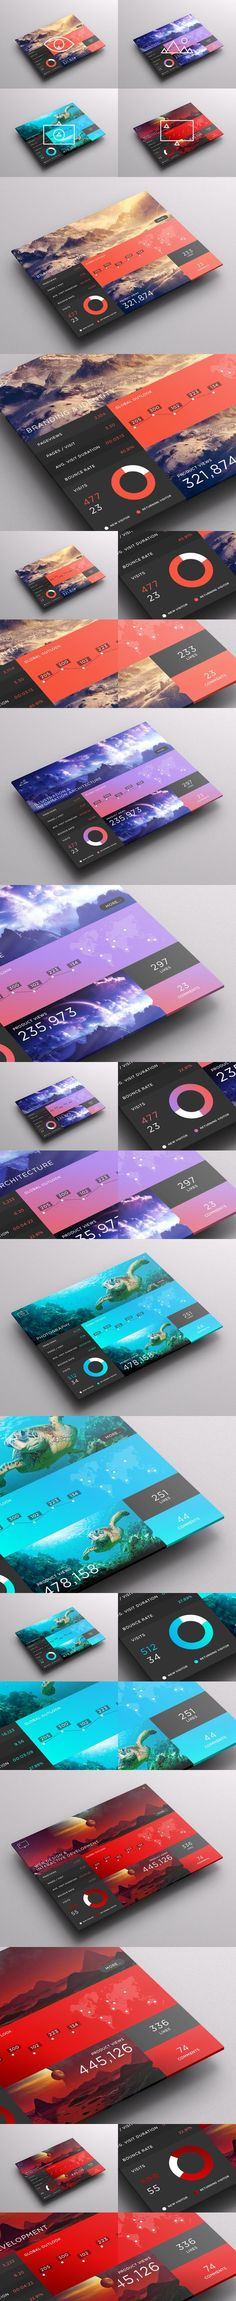 SJQHUB™ // Visual Data UI dashboard. Also, wouldn't it be nice a tablet with a real full size screen?. If you like UX, design, or design thinking, check out theuxblog.com